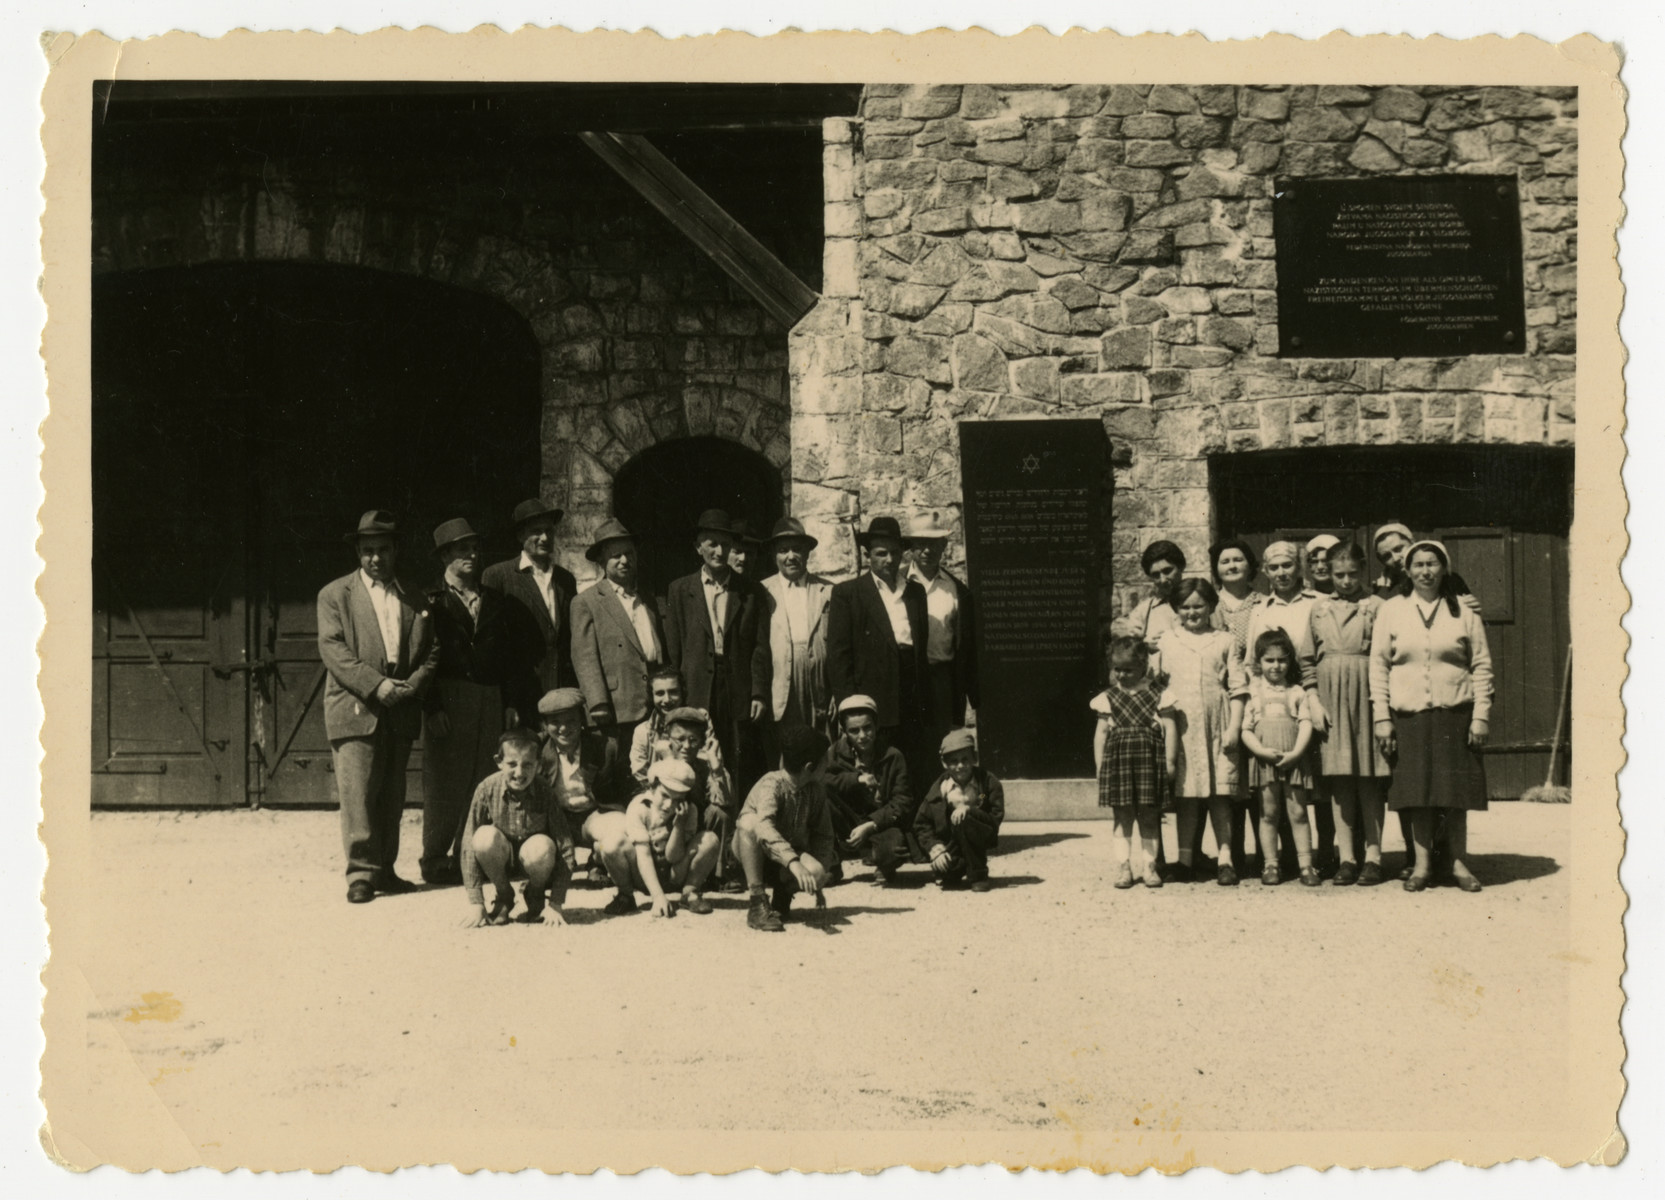 A group of Orthodox Jewish Holocaust survivors and their children visit the Mauthausen concentration camp.  They had fled to Austria from Hungary after the 1956 revolution and were living in Asten, Austria, which is between Linz and Mauthausen.